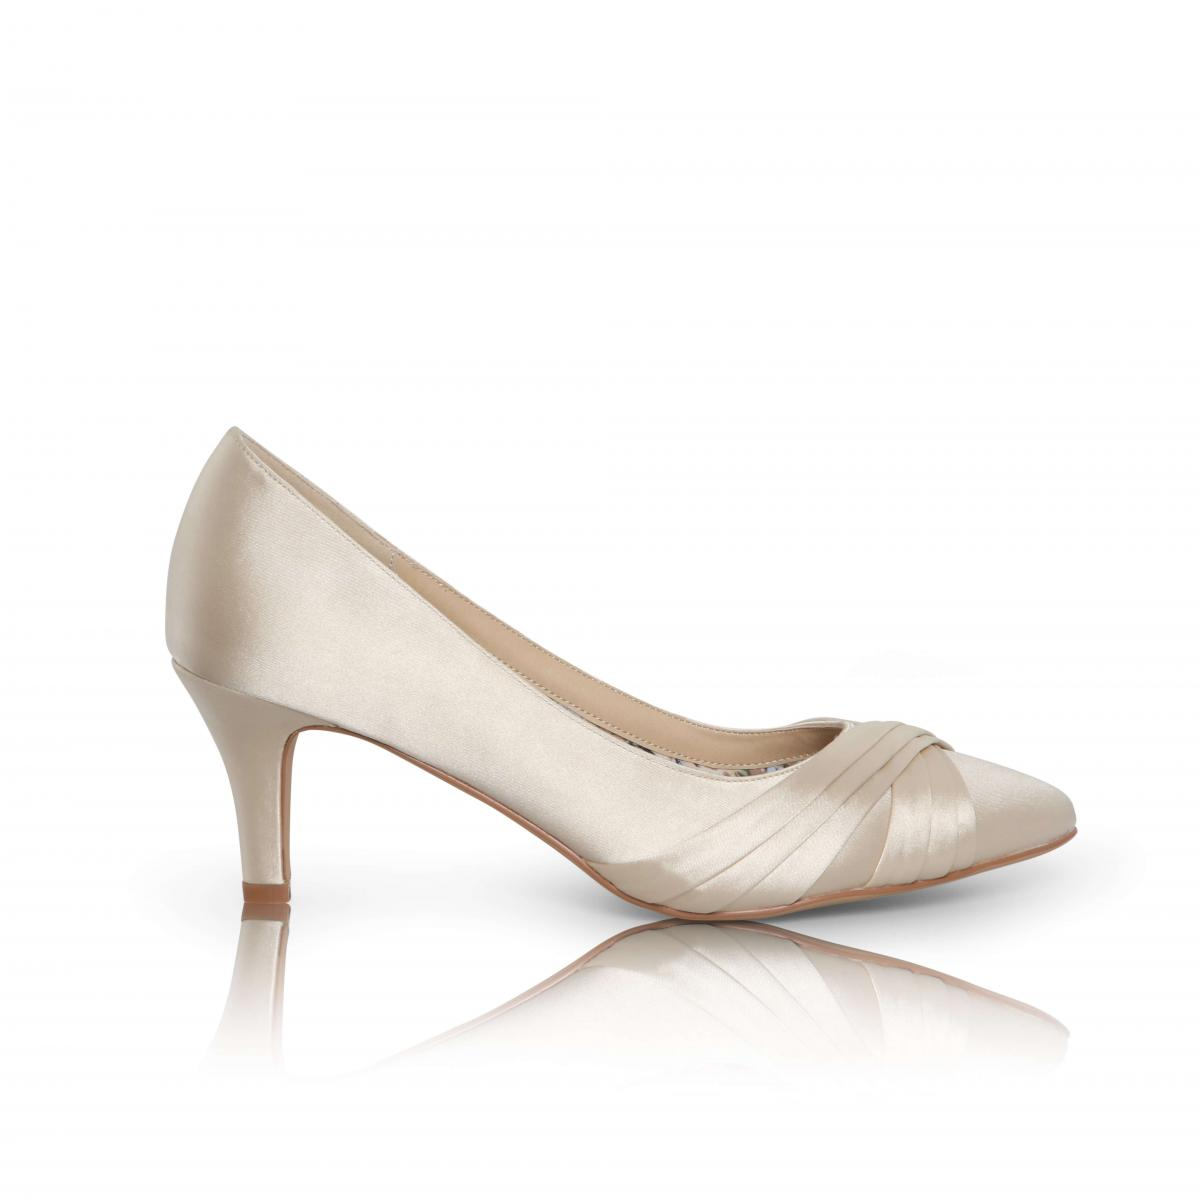 Perfect Bridal Sally Shoes - Champagne 1